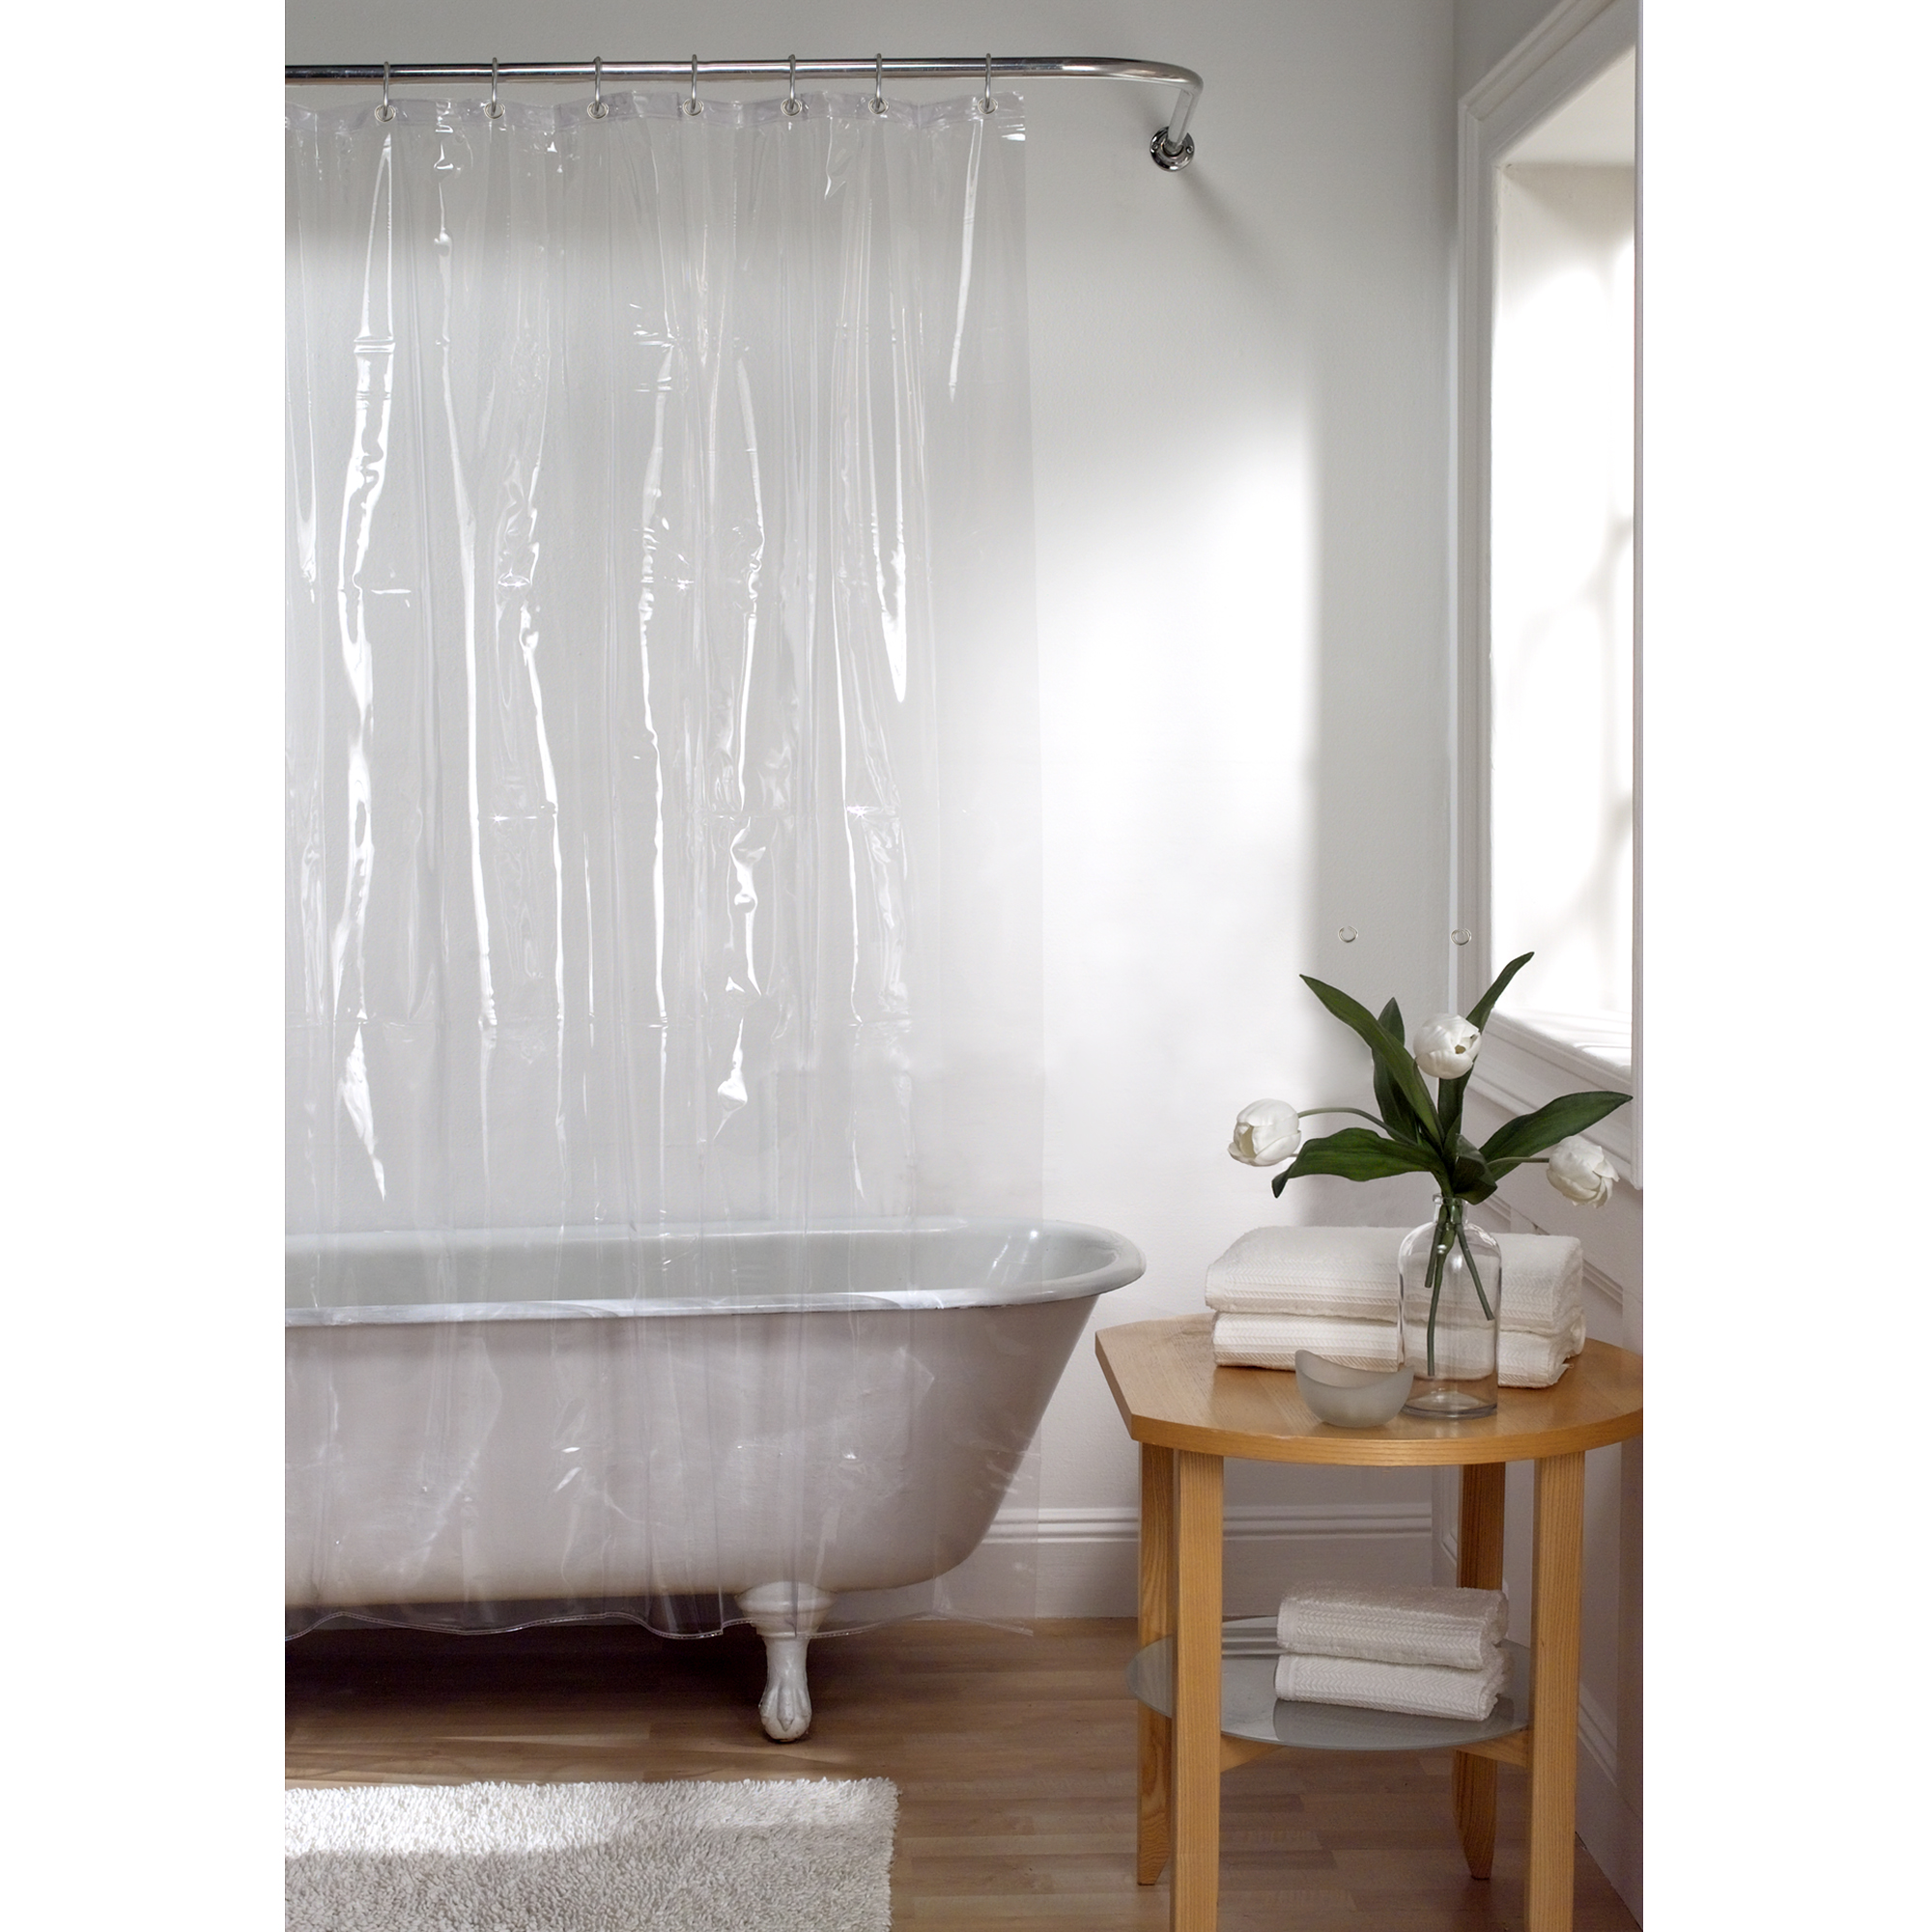 Maytex Super Heavyweight Premium 10-Gauge Shower Curtain or Liner